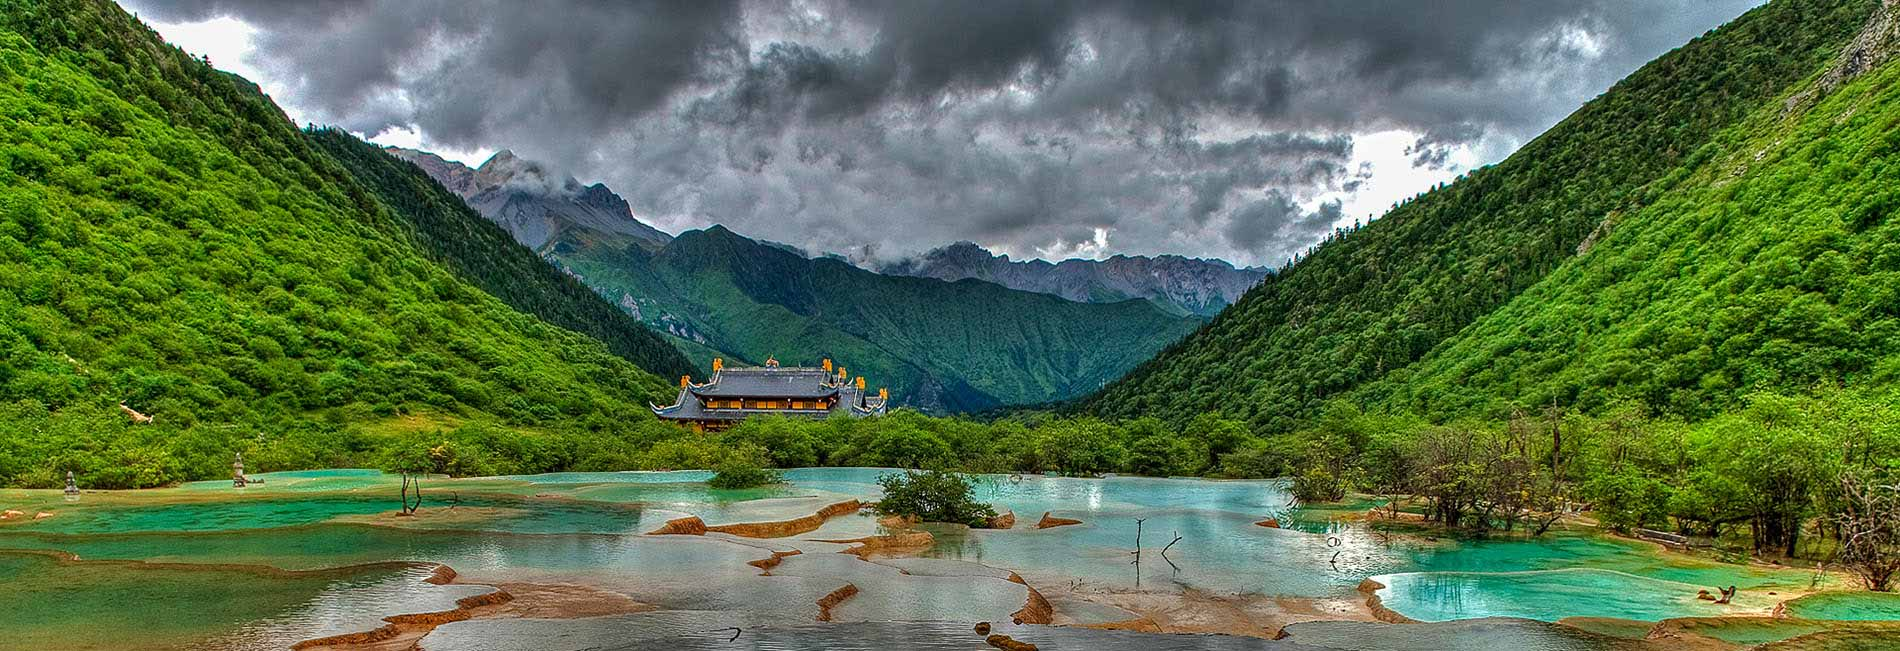 Jiuzhaigou Tour in Sichuan China